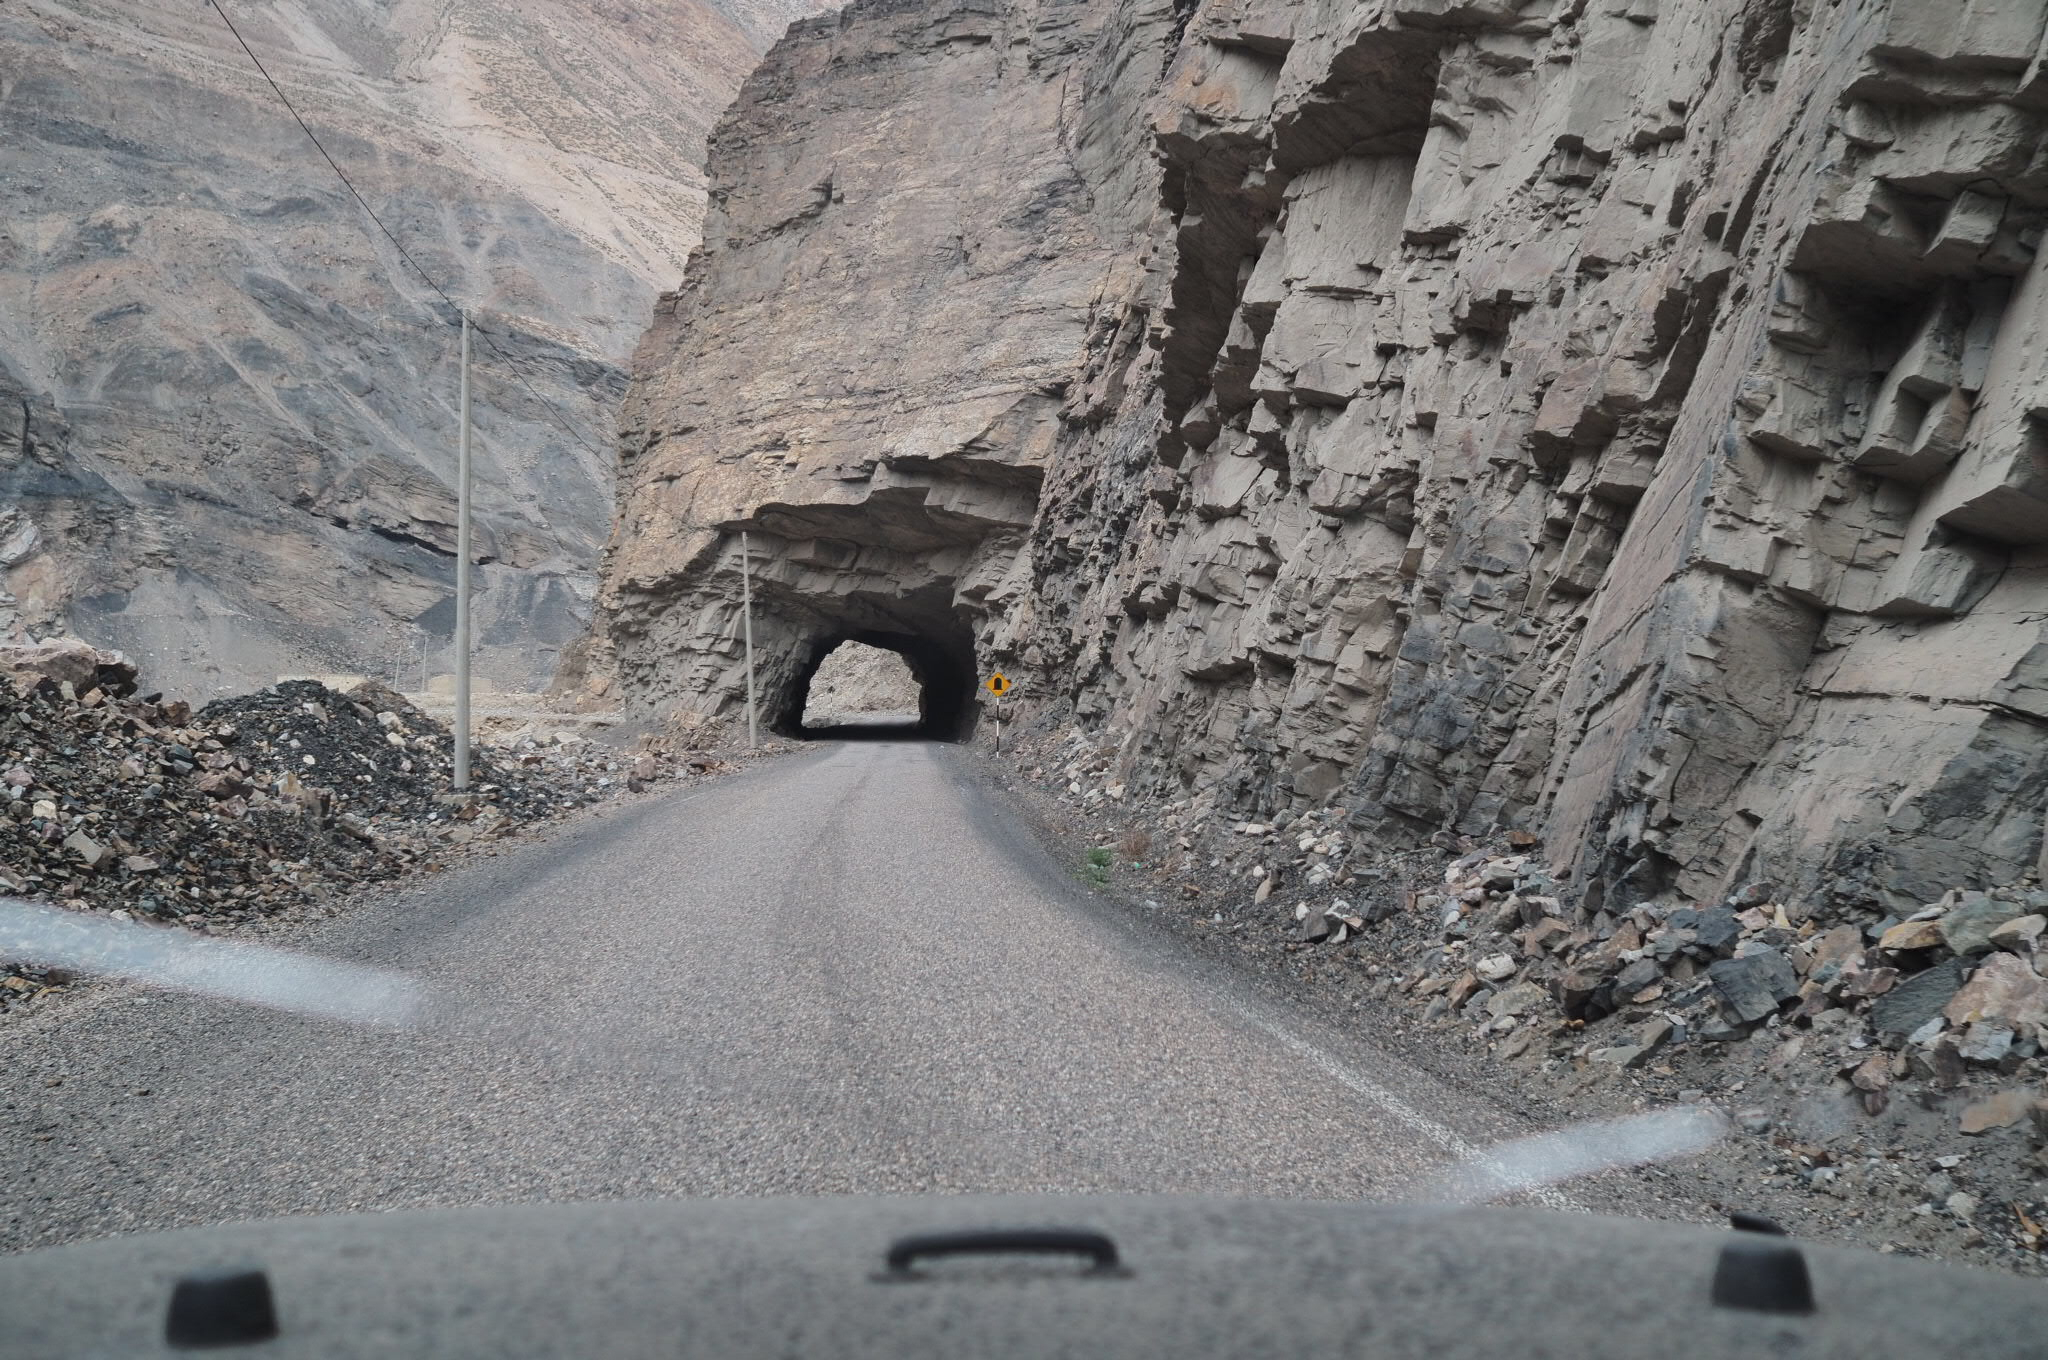 Driving through the Andes in Peru…this road was pure suicide…blind corners, in tunnels, with one lane sometimes…absolutely insane.